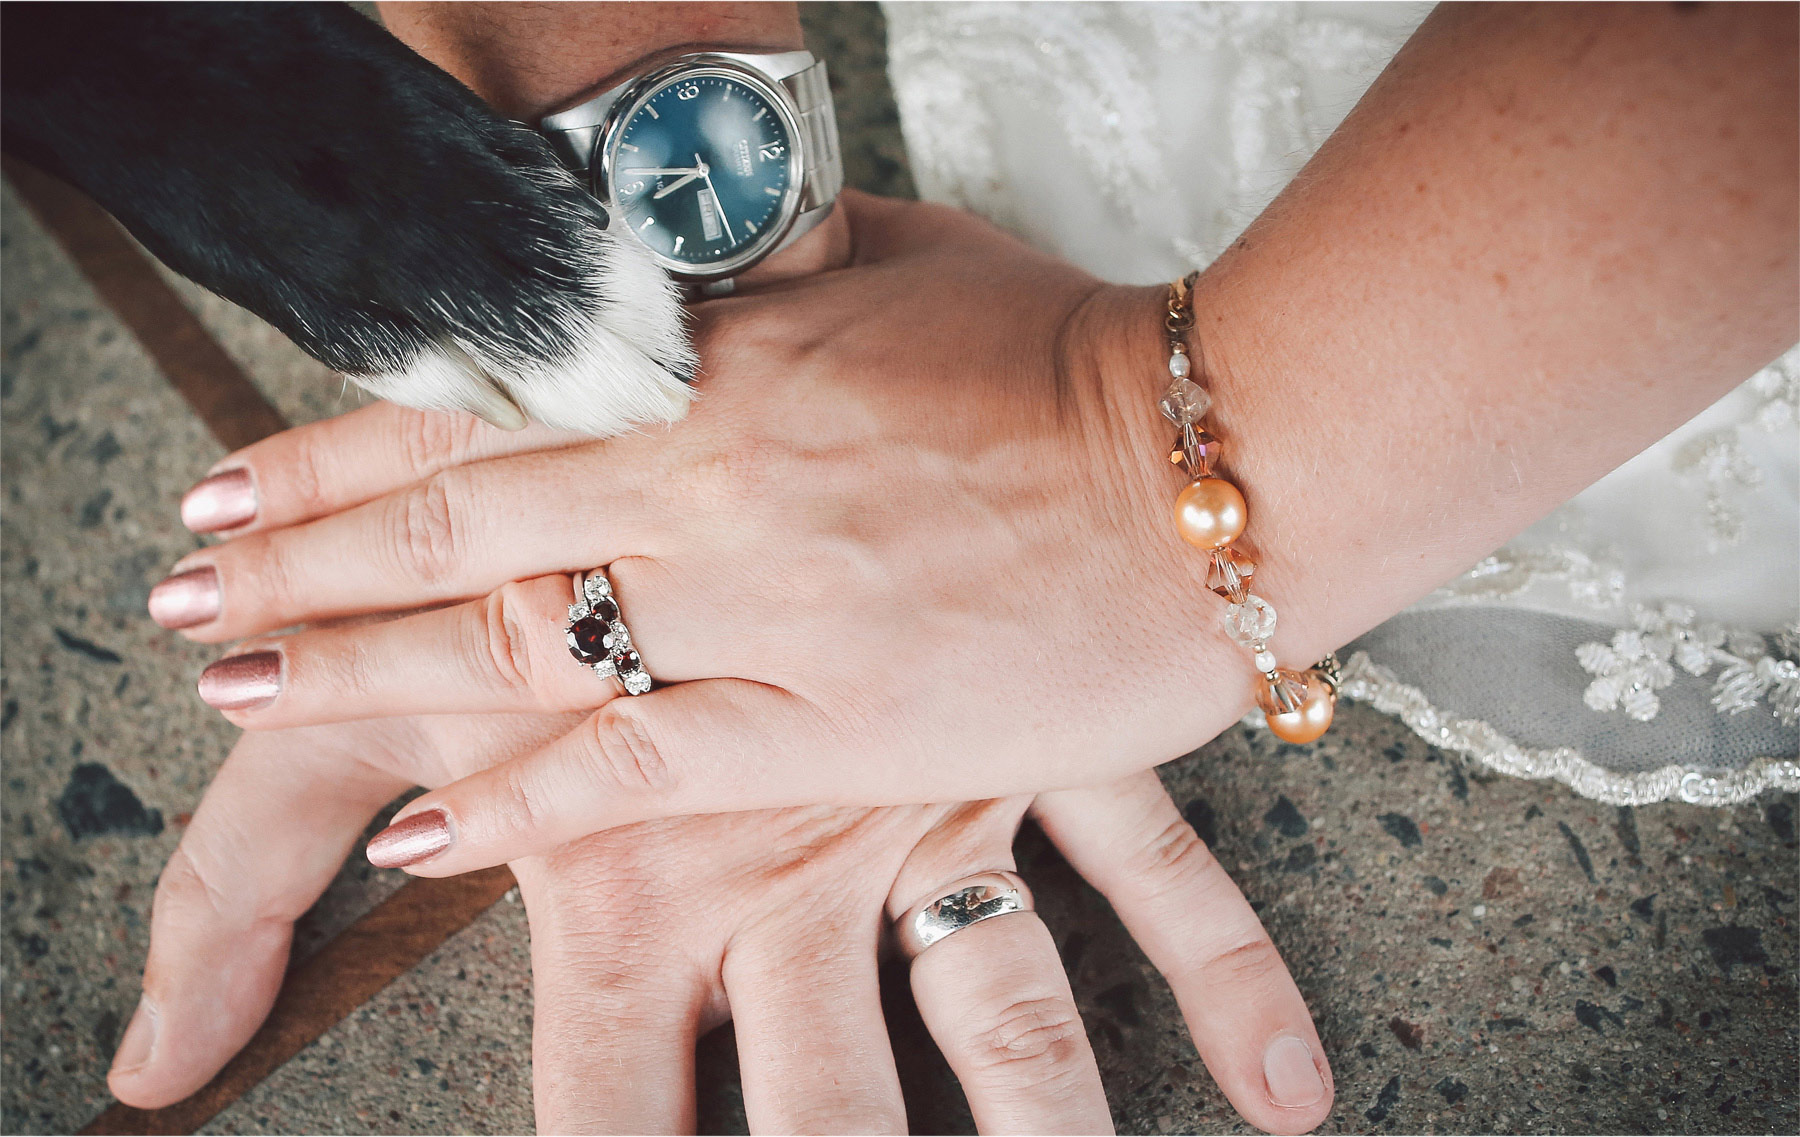 19-Duluth-Minnesota-Wedding-Photographer-by-Andrew-Vick-Photography-Summer-Bride-Groom-Dog-Hands-Rings-Vintage-Katie-and-Andrew.jpg